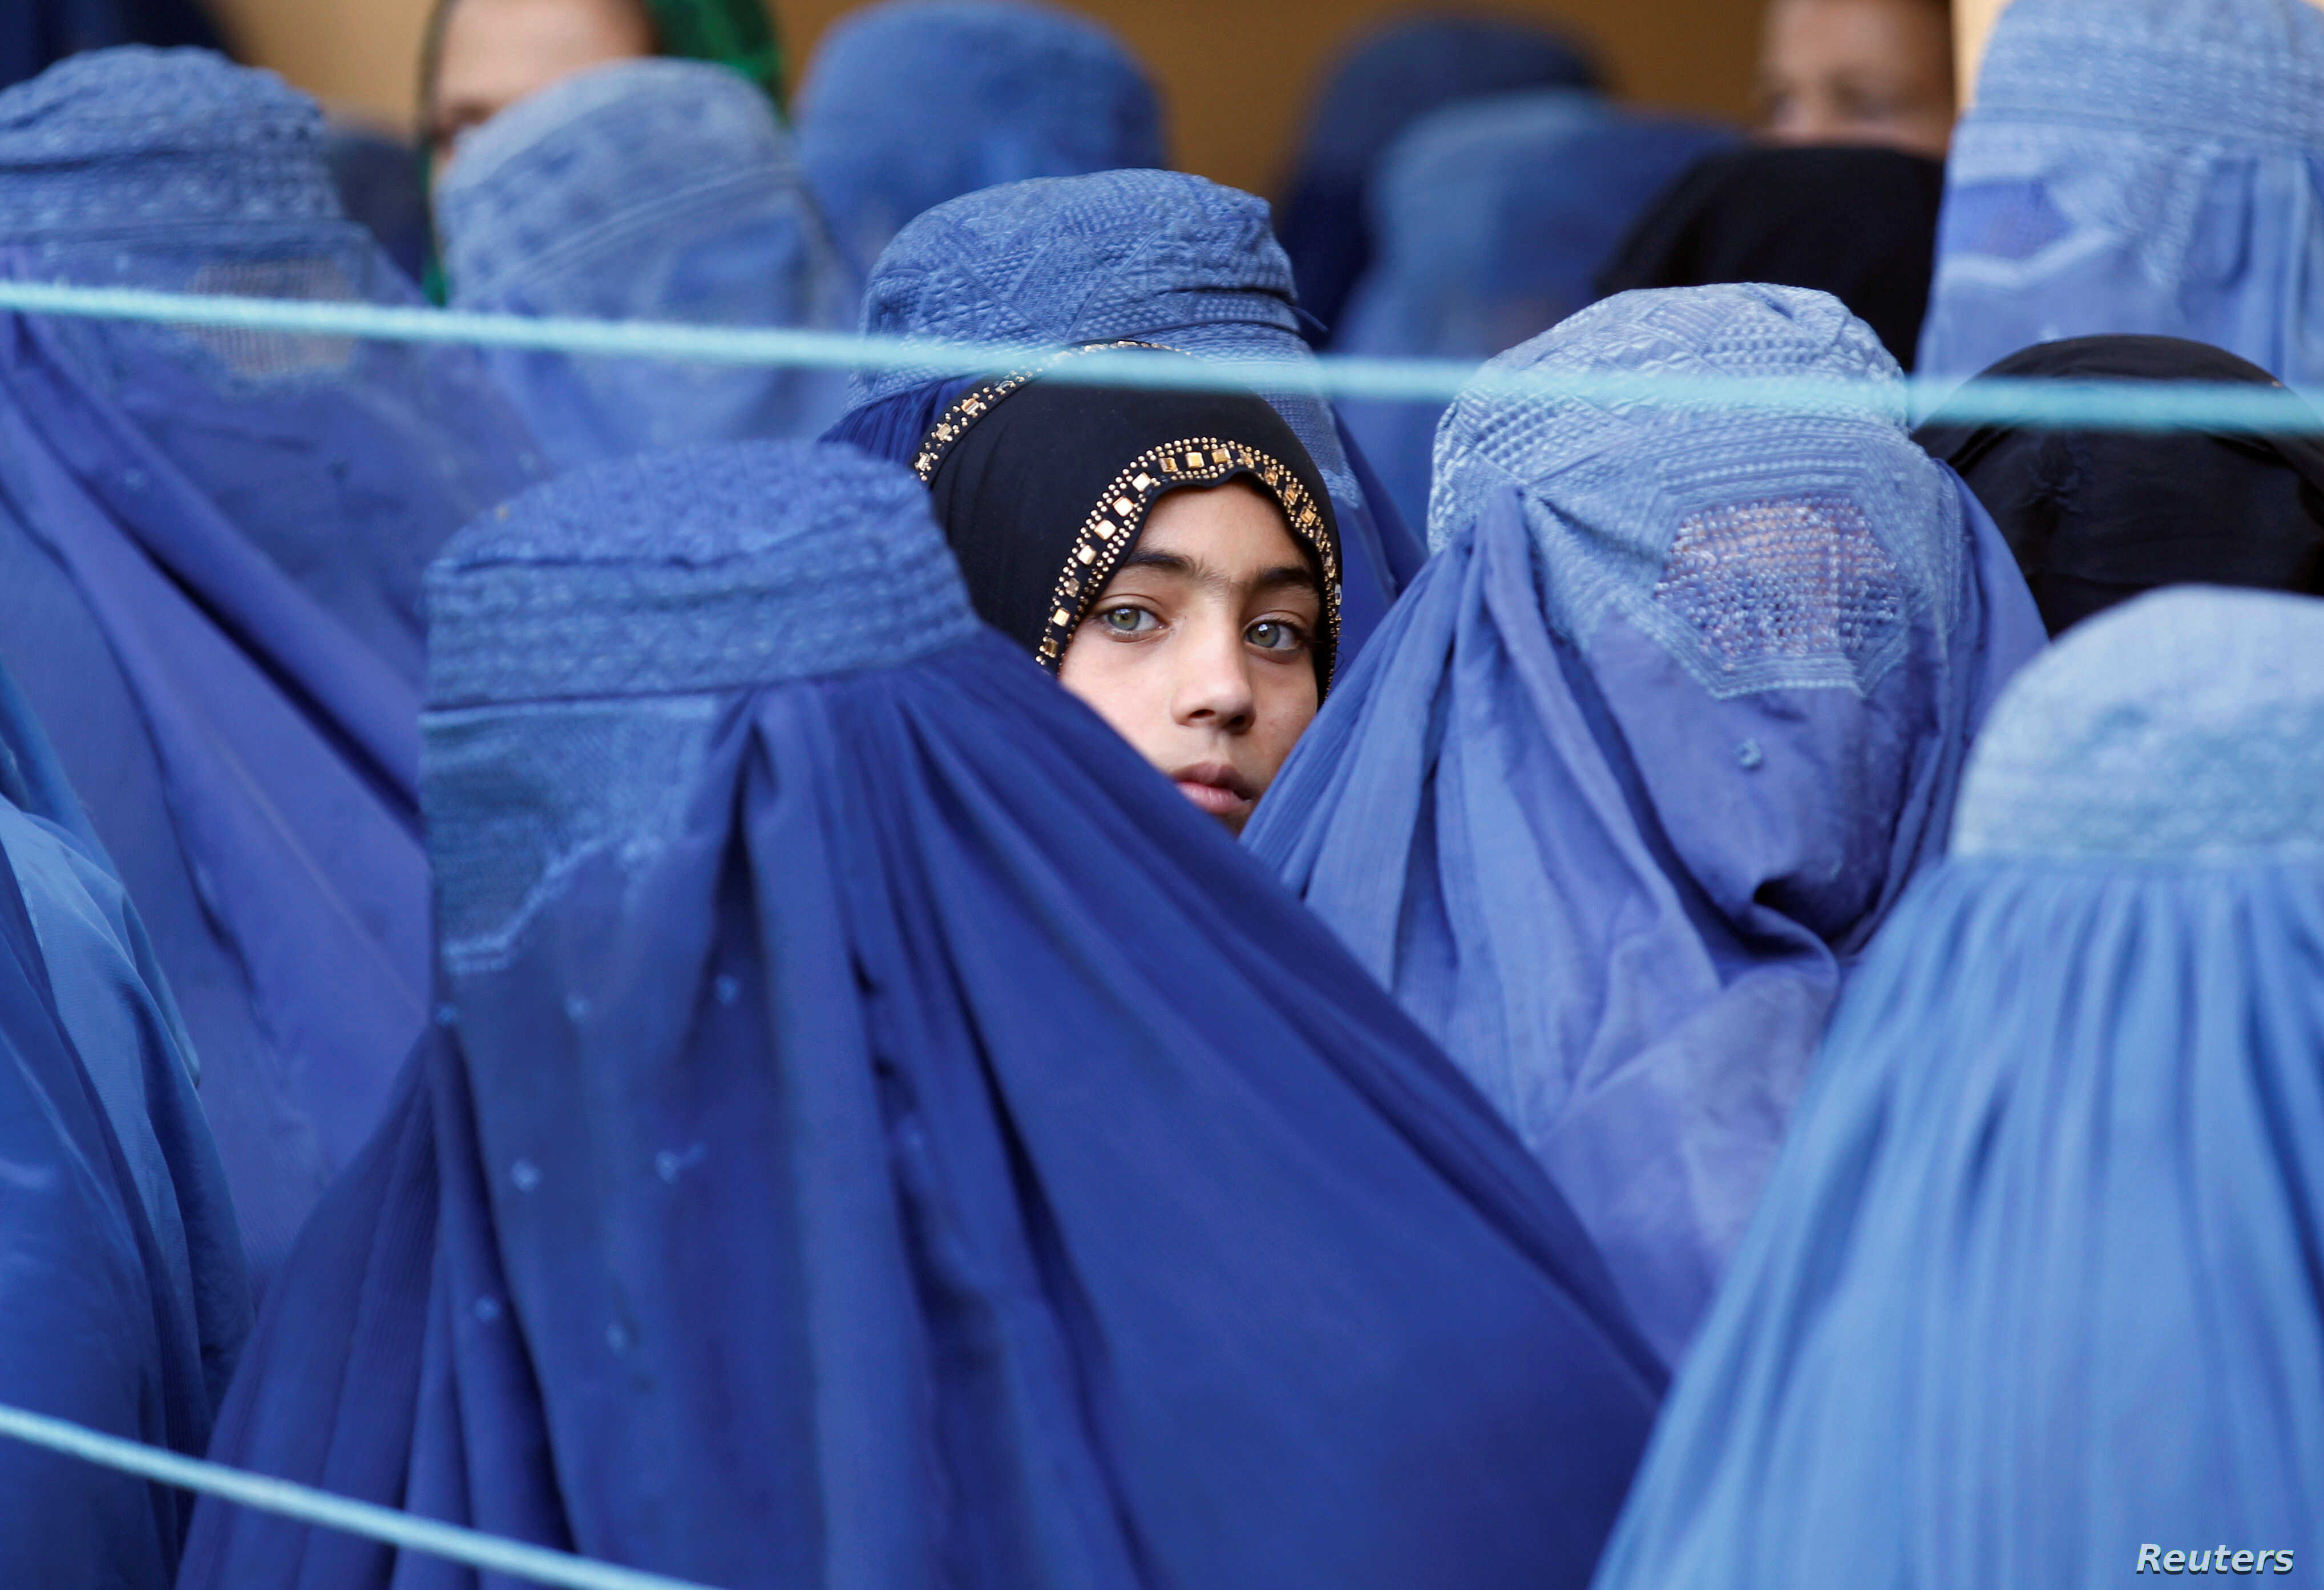 Afghan Women Fight for Their Identity   Voice of America - English